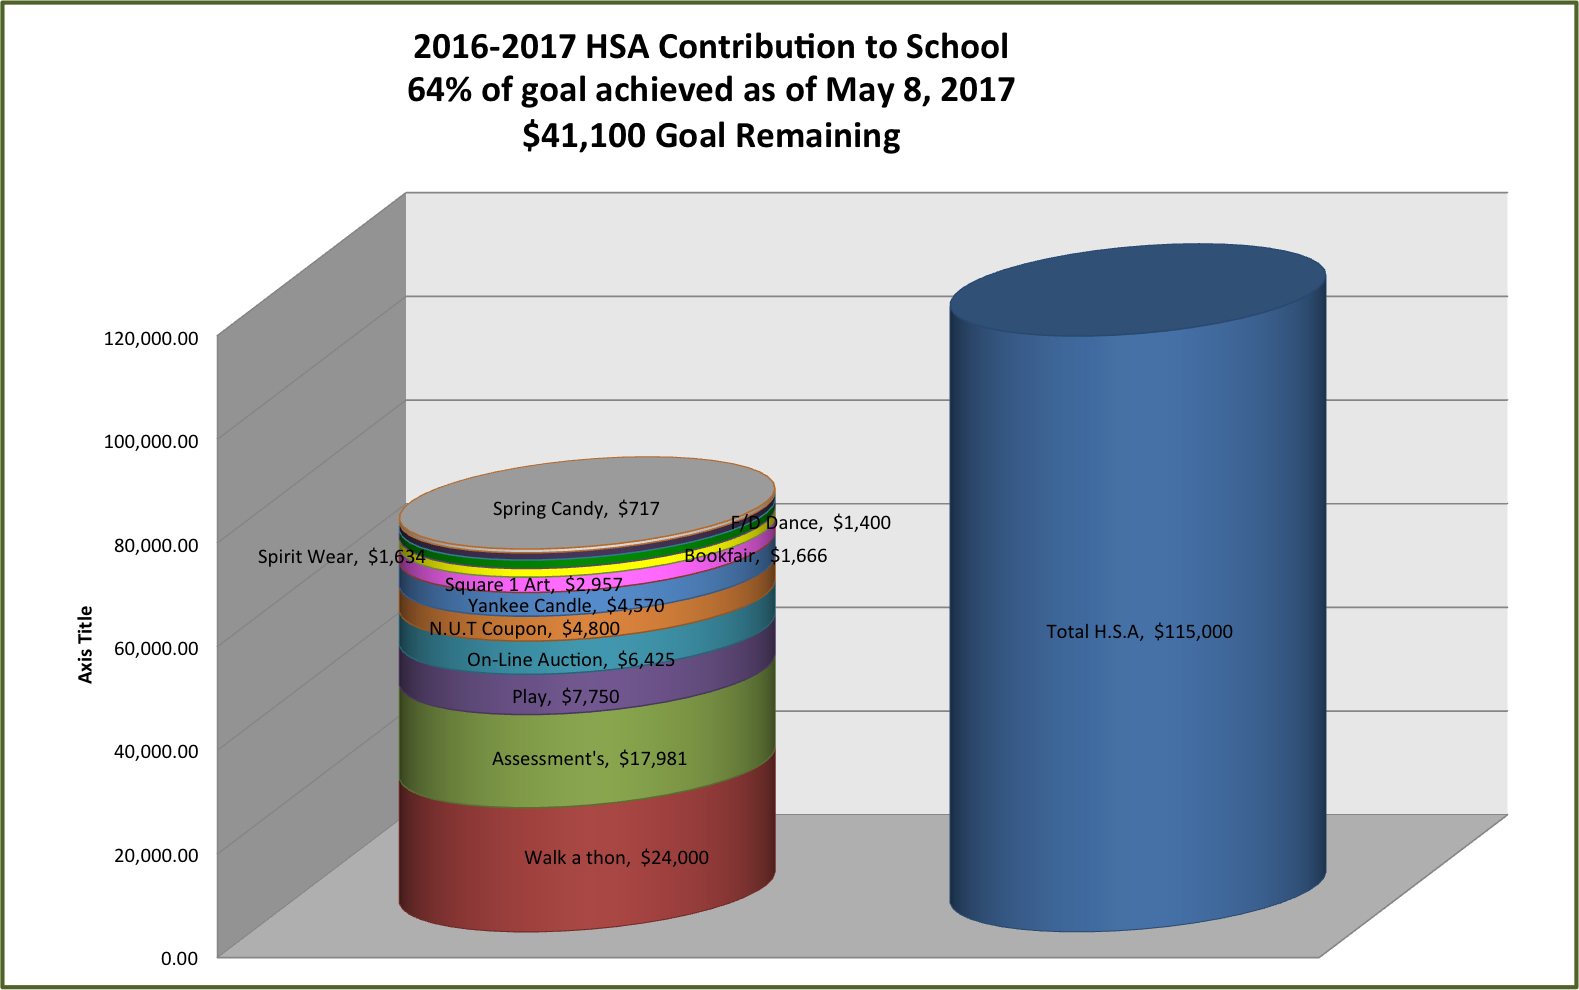 2016-2017 HSA Contributions to School Chart showing 64% of goal achieved as of May 8, 2017.